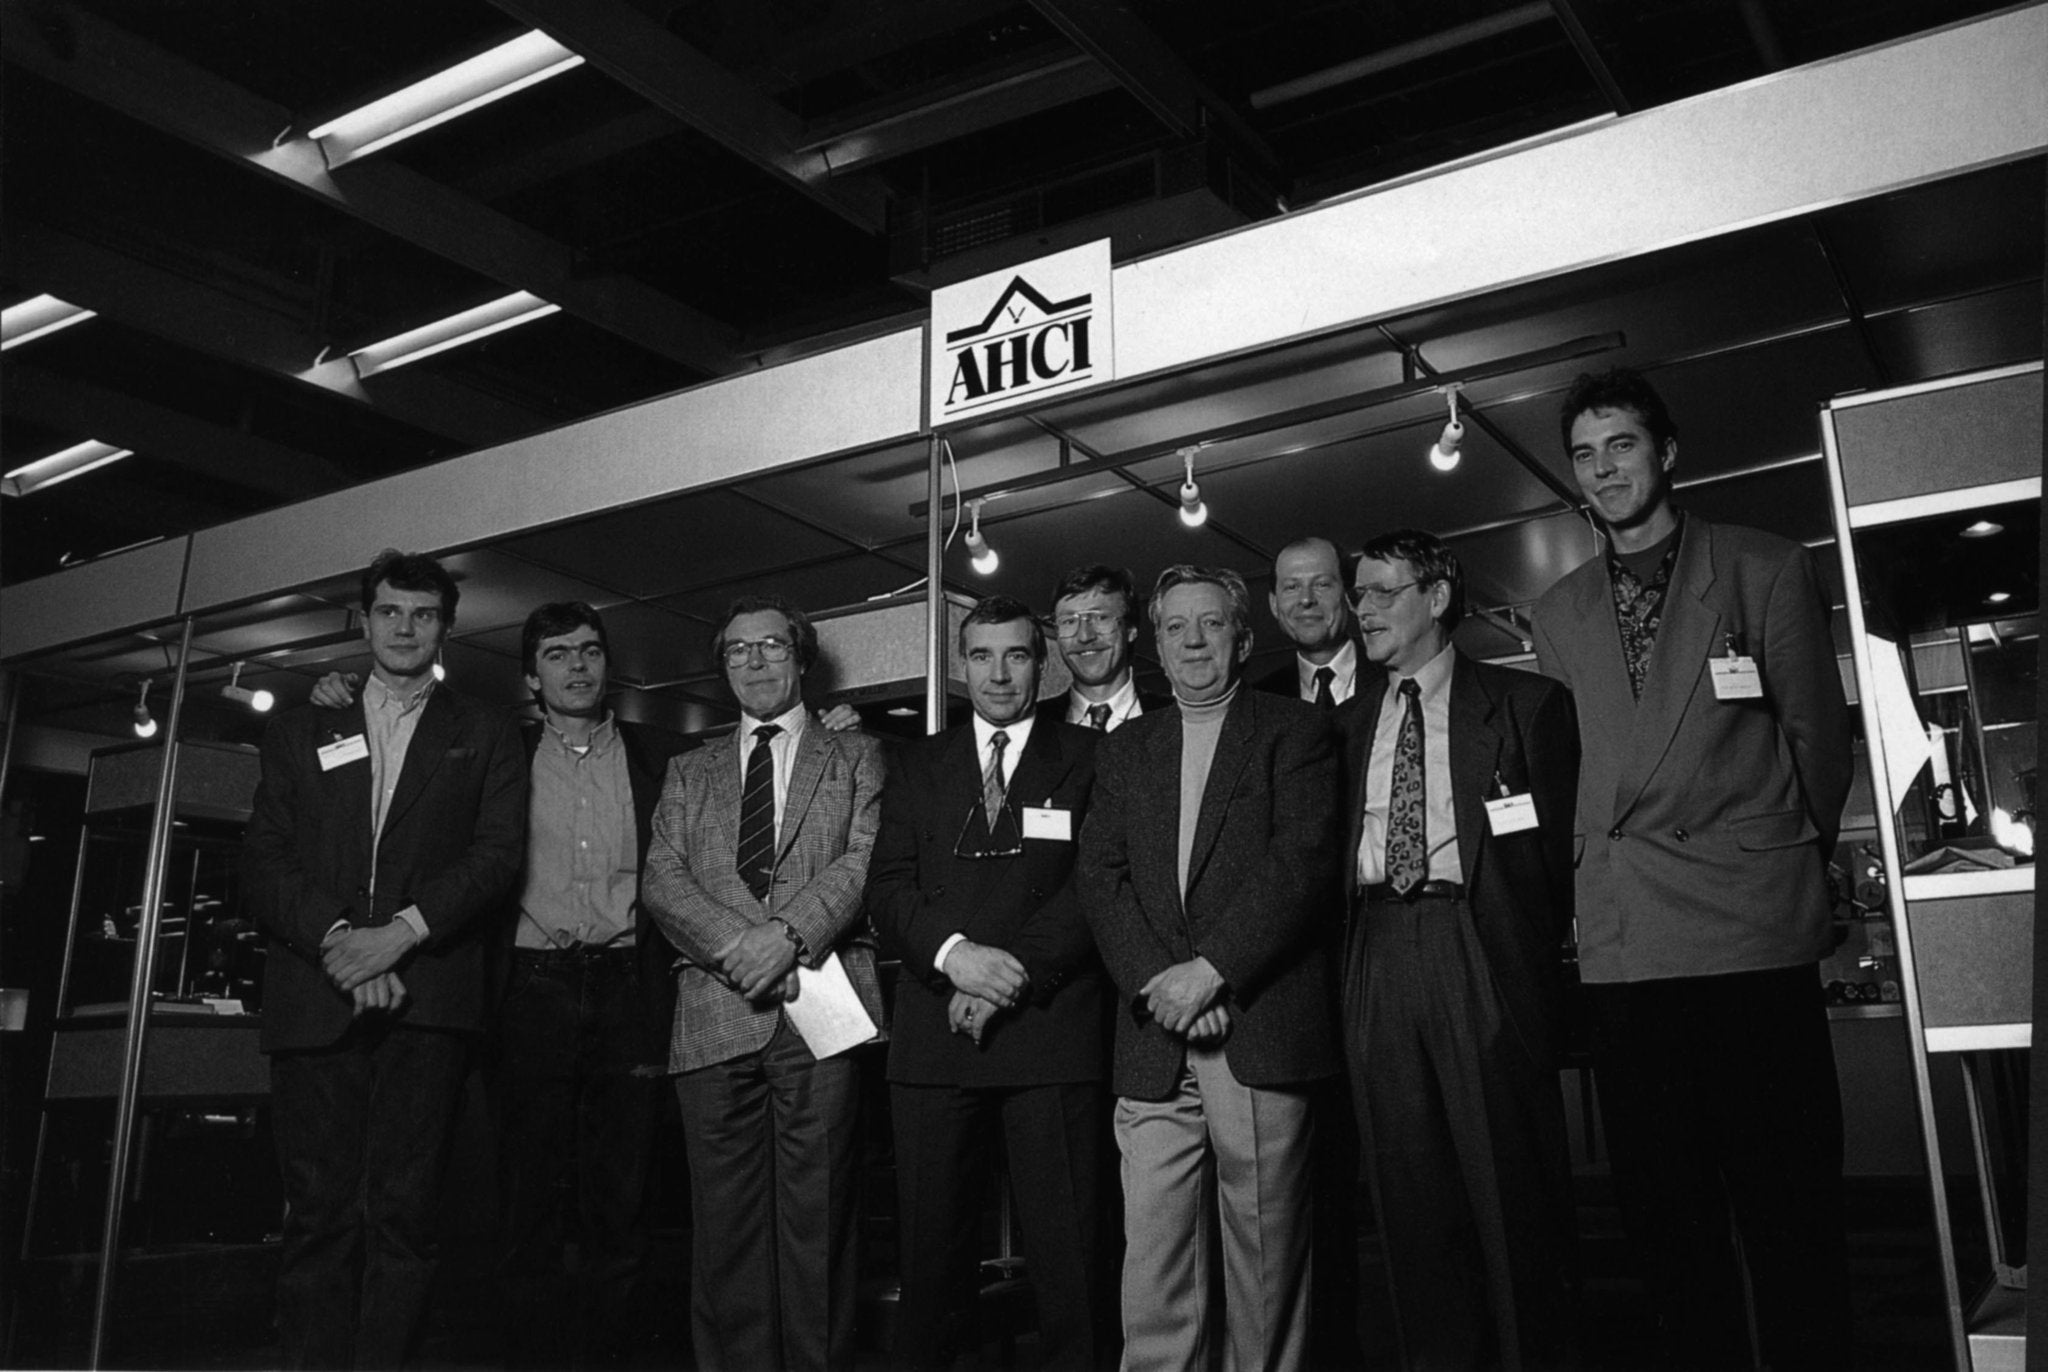 Members of the AHCI at Baselworld in 1986 with Sven Andersen, Franck Muller and George Daniels for A Collected Man London